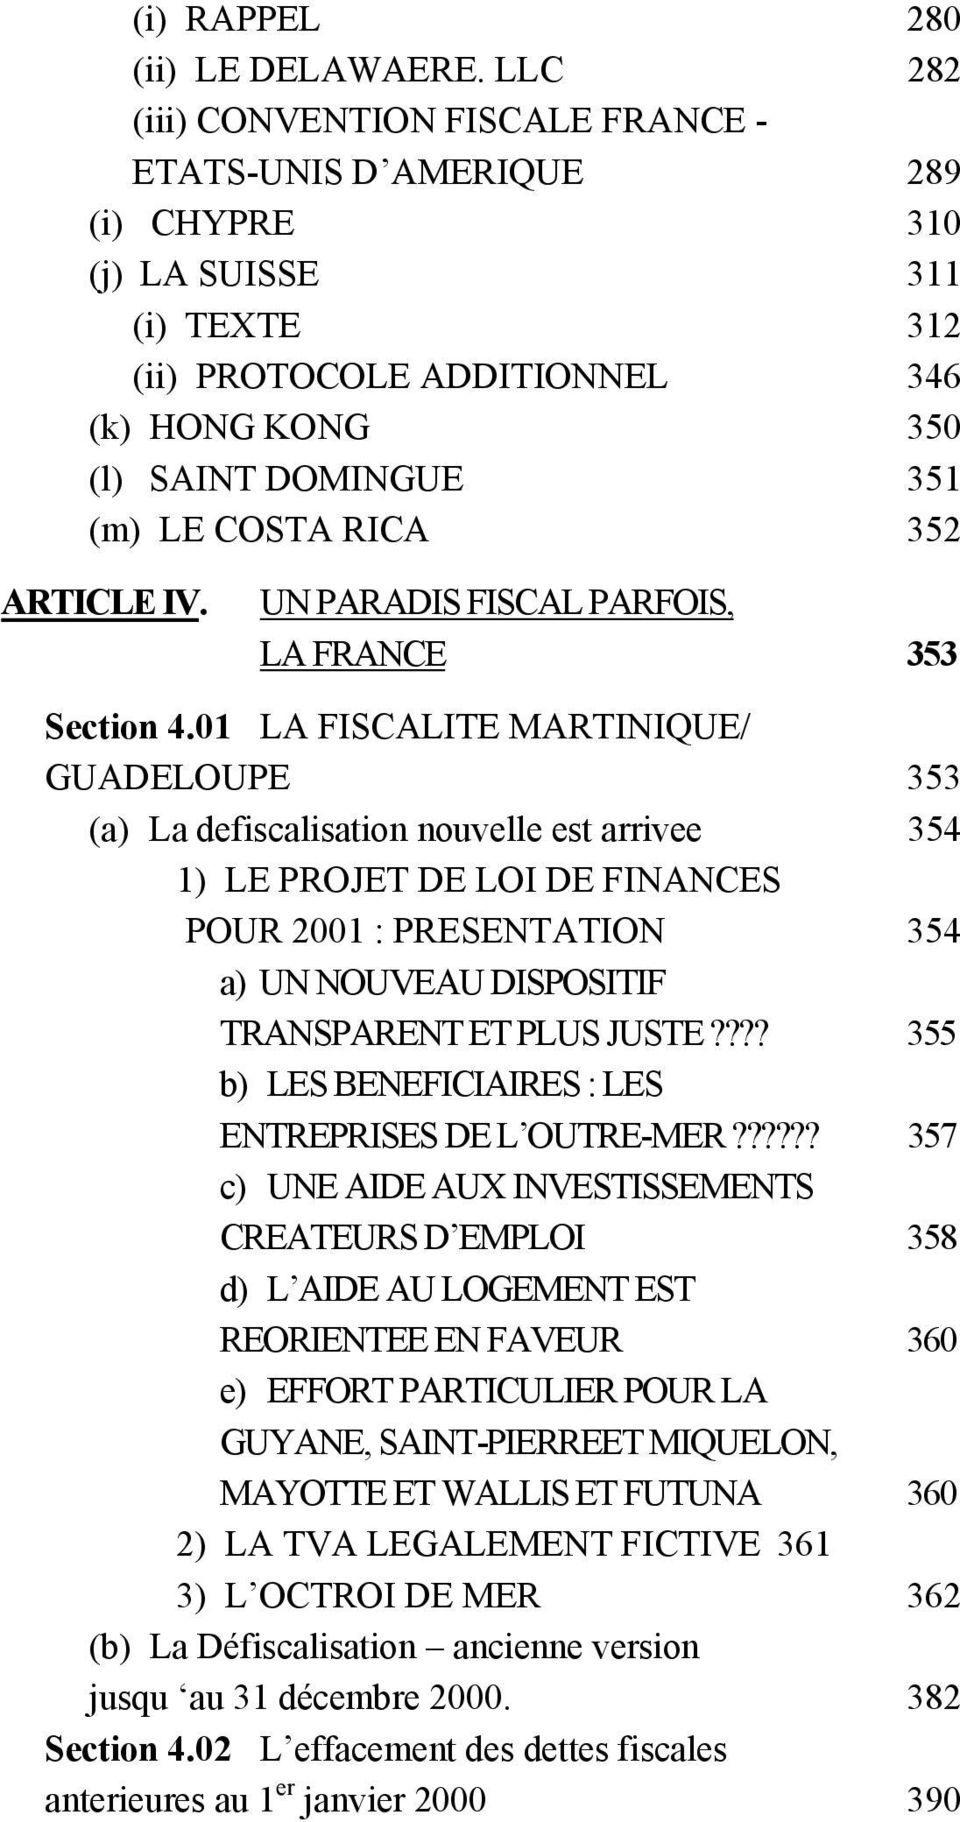 RICA 352 ARTICLE IV. UN PARADIS FISCAL PARFOIS, LA FRANCE 353 Section 4.